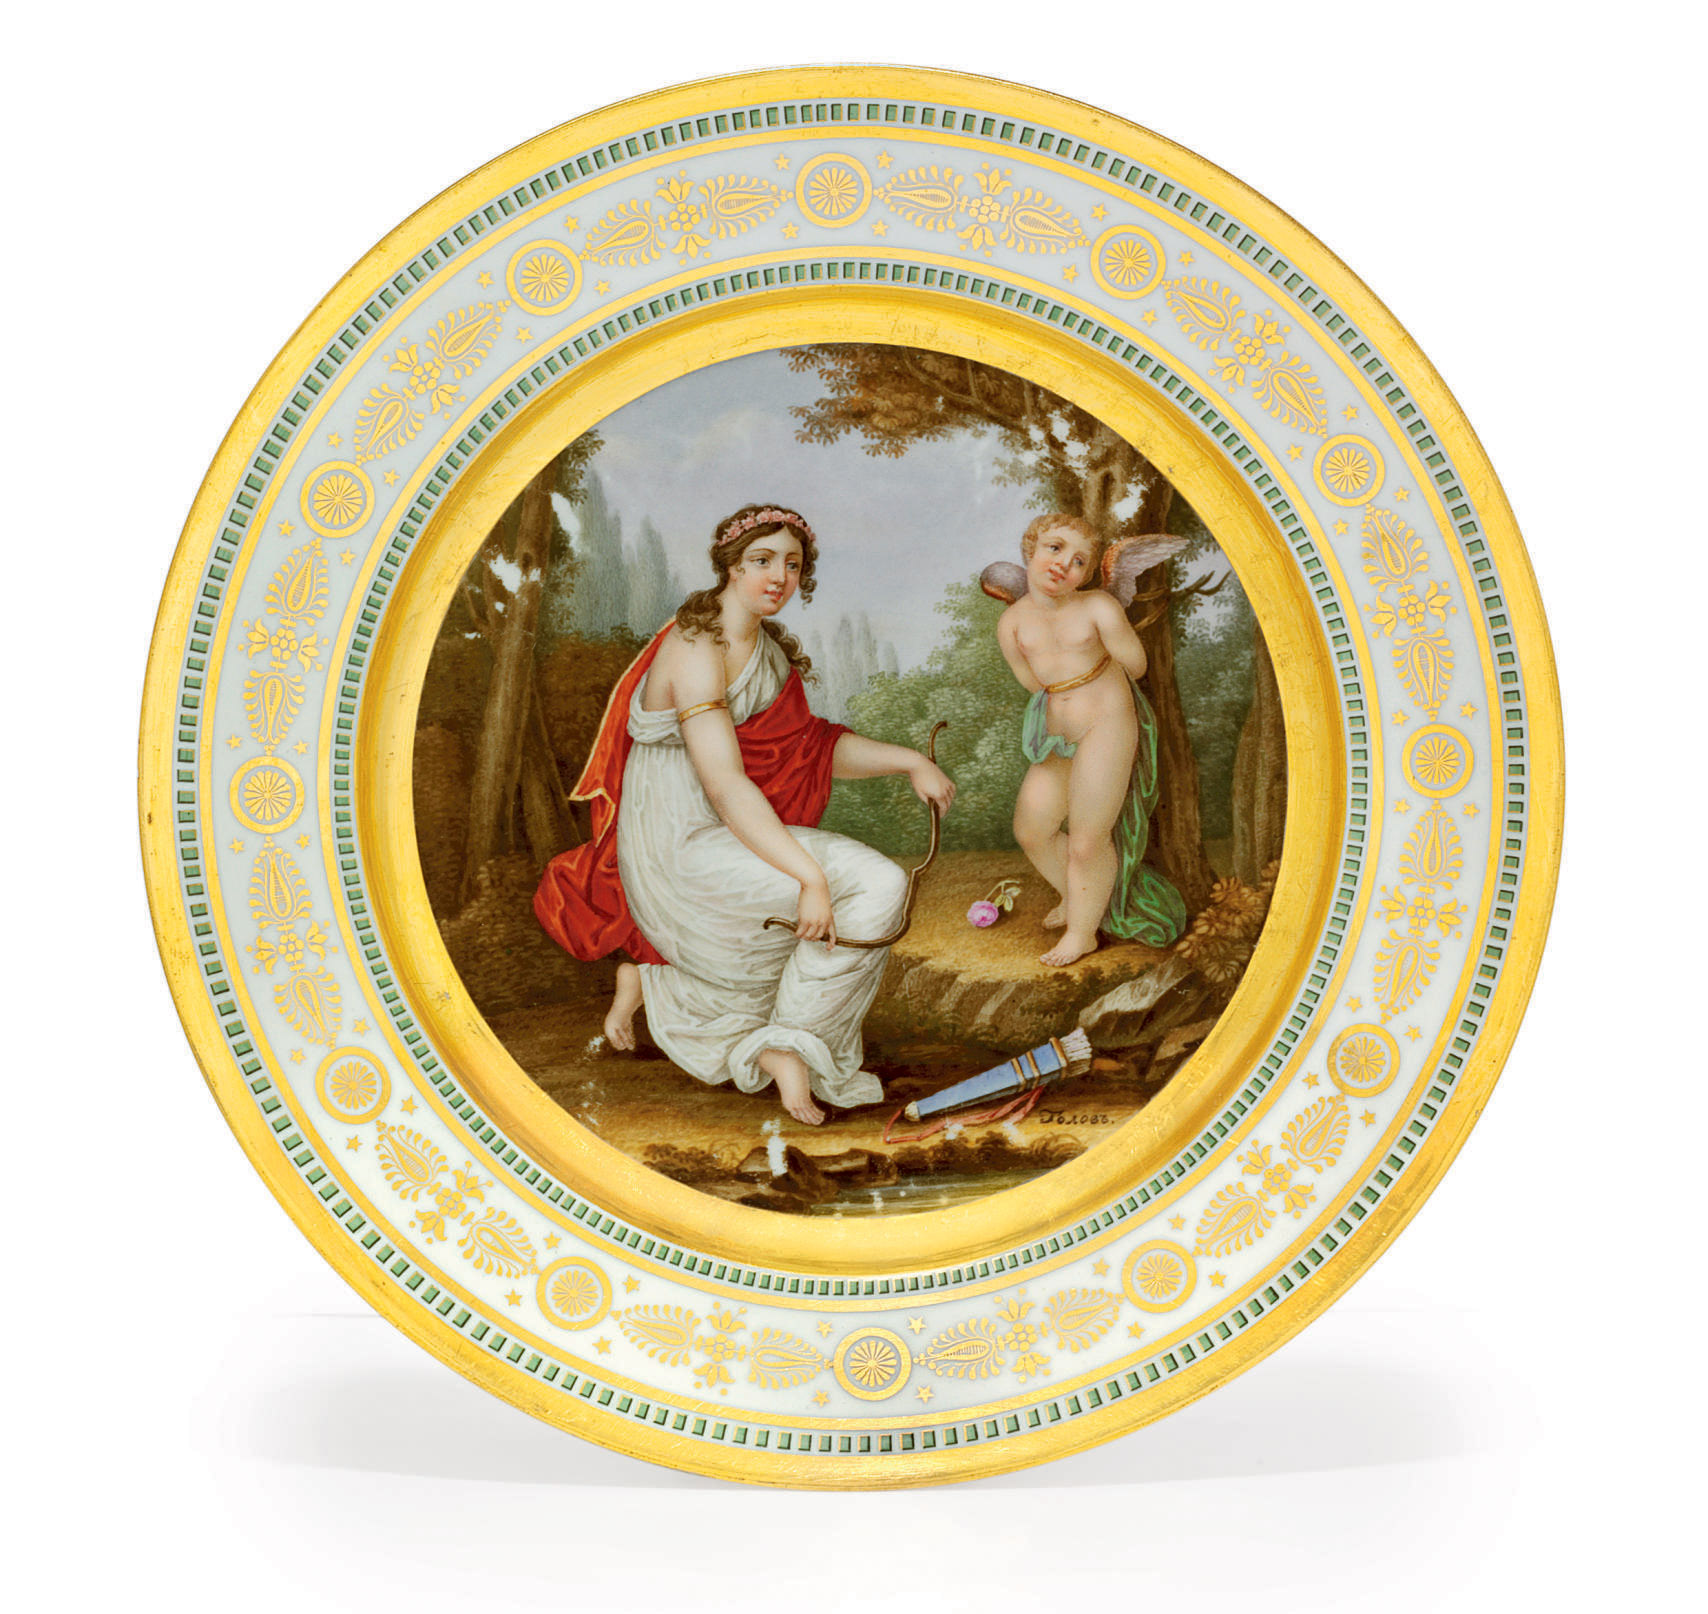 A Porcelain Plate from the Mik